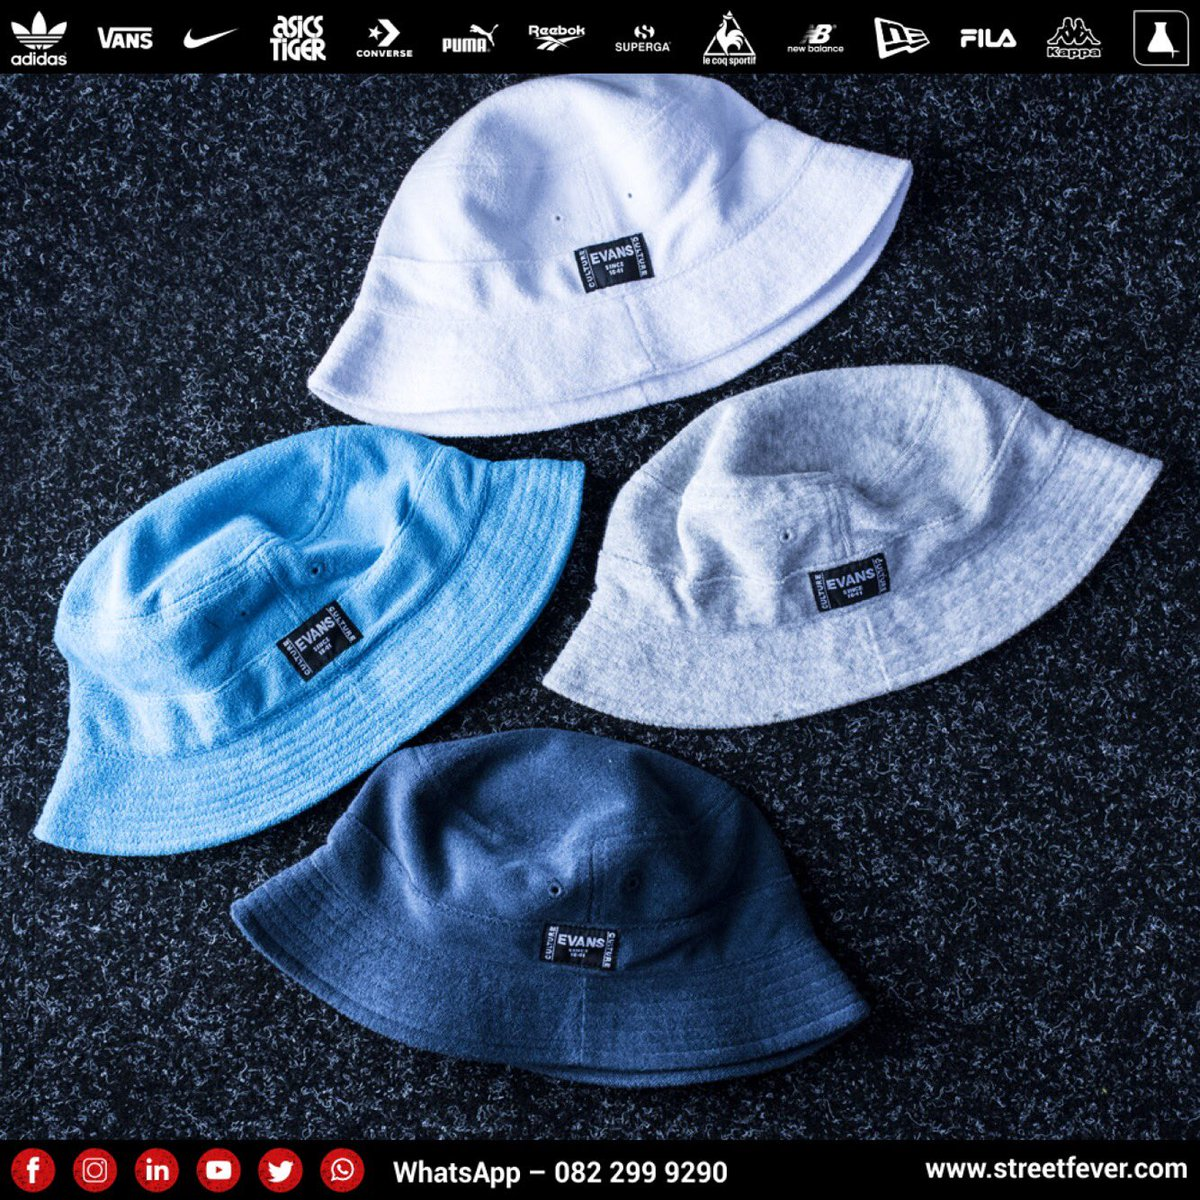 Streetfeverofficial On Twitter The Evansculturesa Bucket Hat Is Your Streetwear Essential Keep Out The Sun This Weekend While Staying On Top Of Your Style Game Streetfeverofficial Evans Evansculture Headwear Bucket Har Style